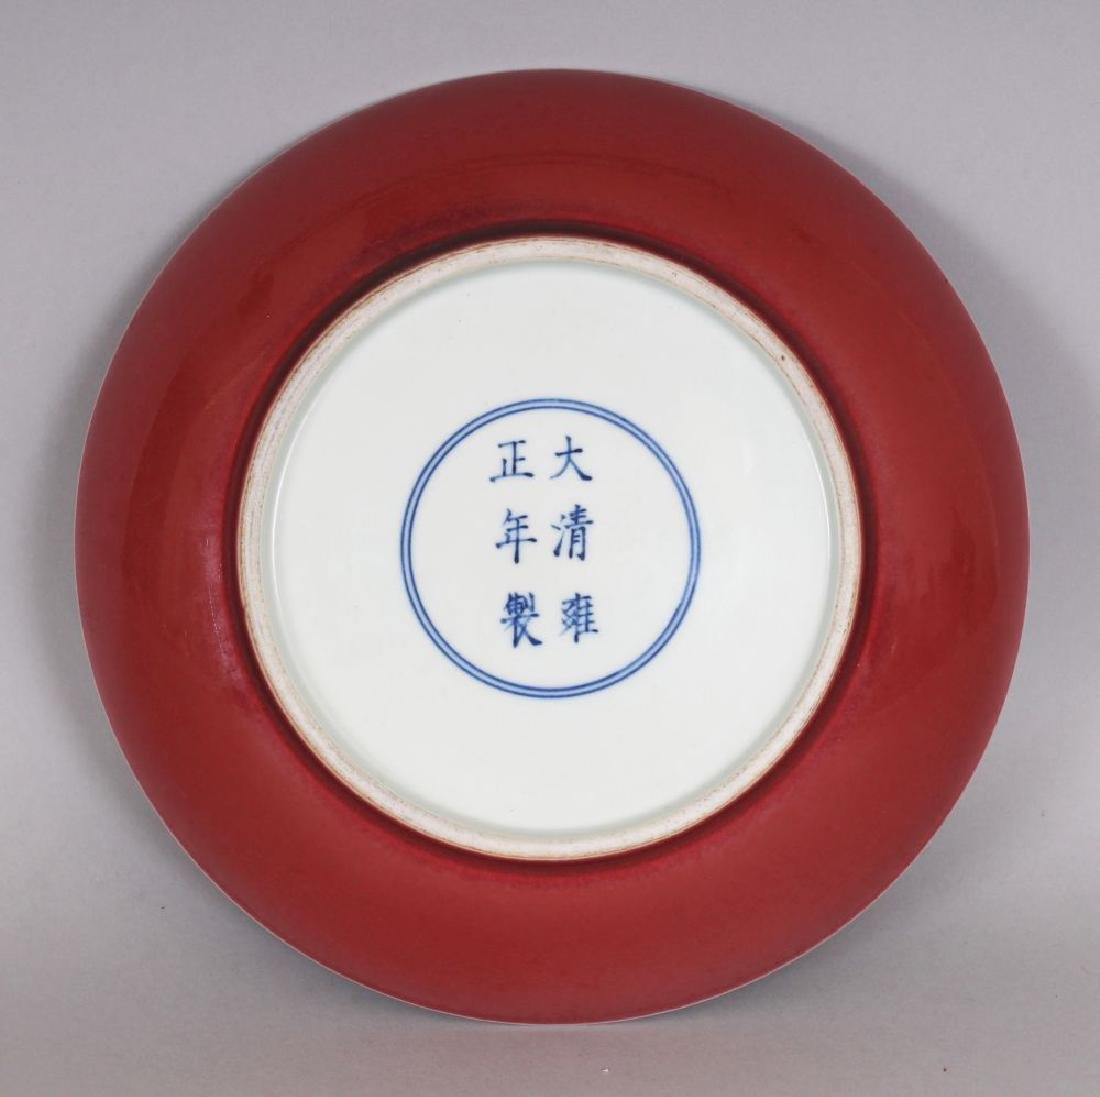 A CHINESE COPPER RED PORCELAIN SAUCER DISH, the base - 3